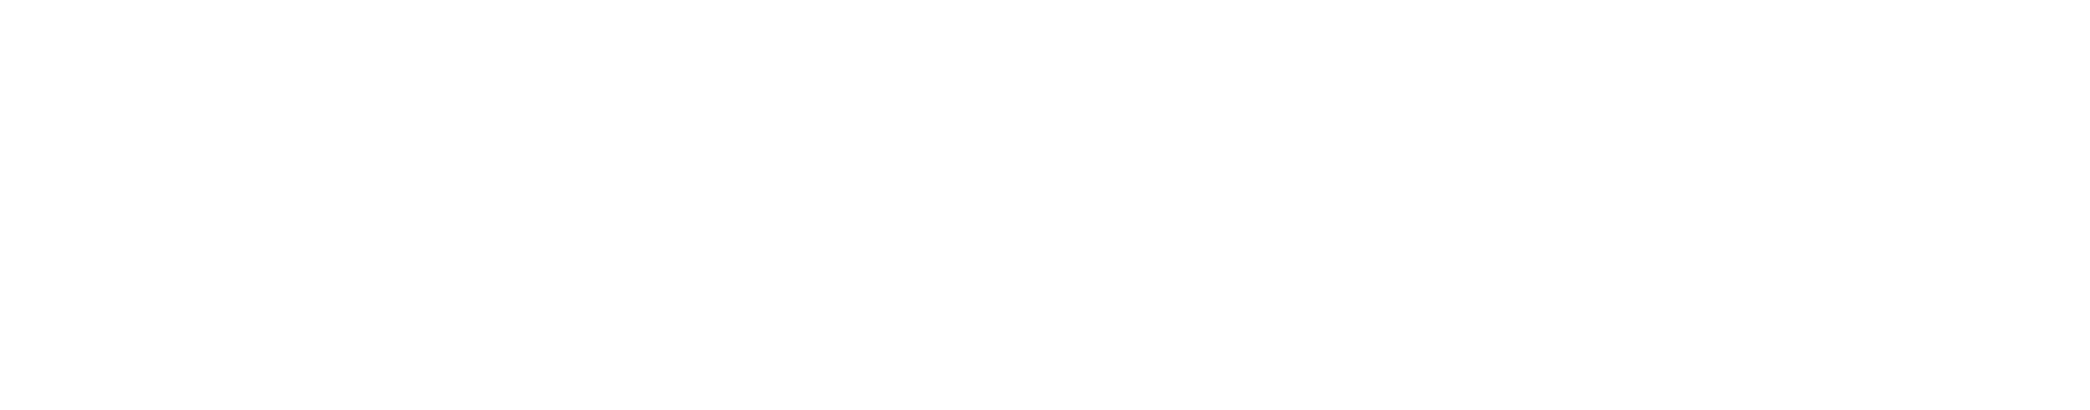 creative strategy branding promotion digital experience